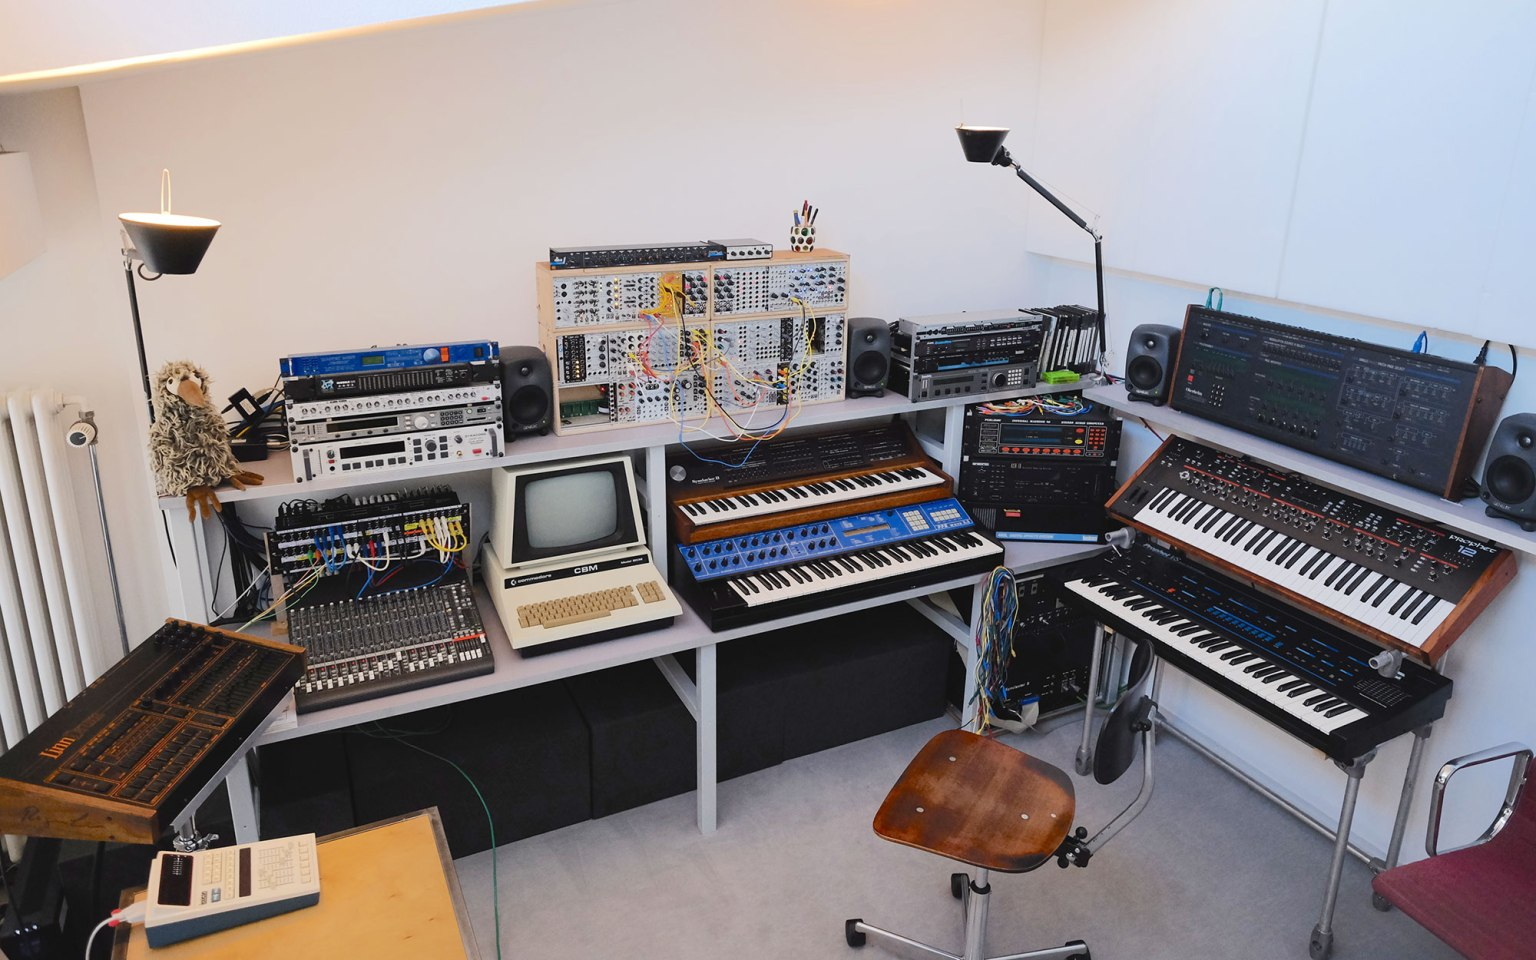 El estudio de Robert Henke. (Foto de la entrevista para Headphone Commute)